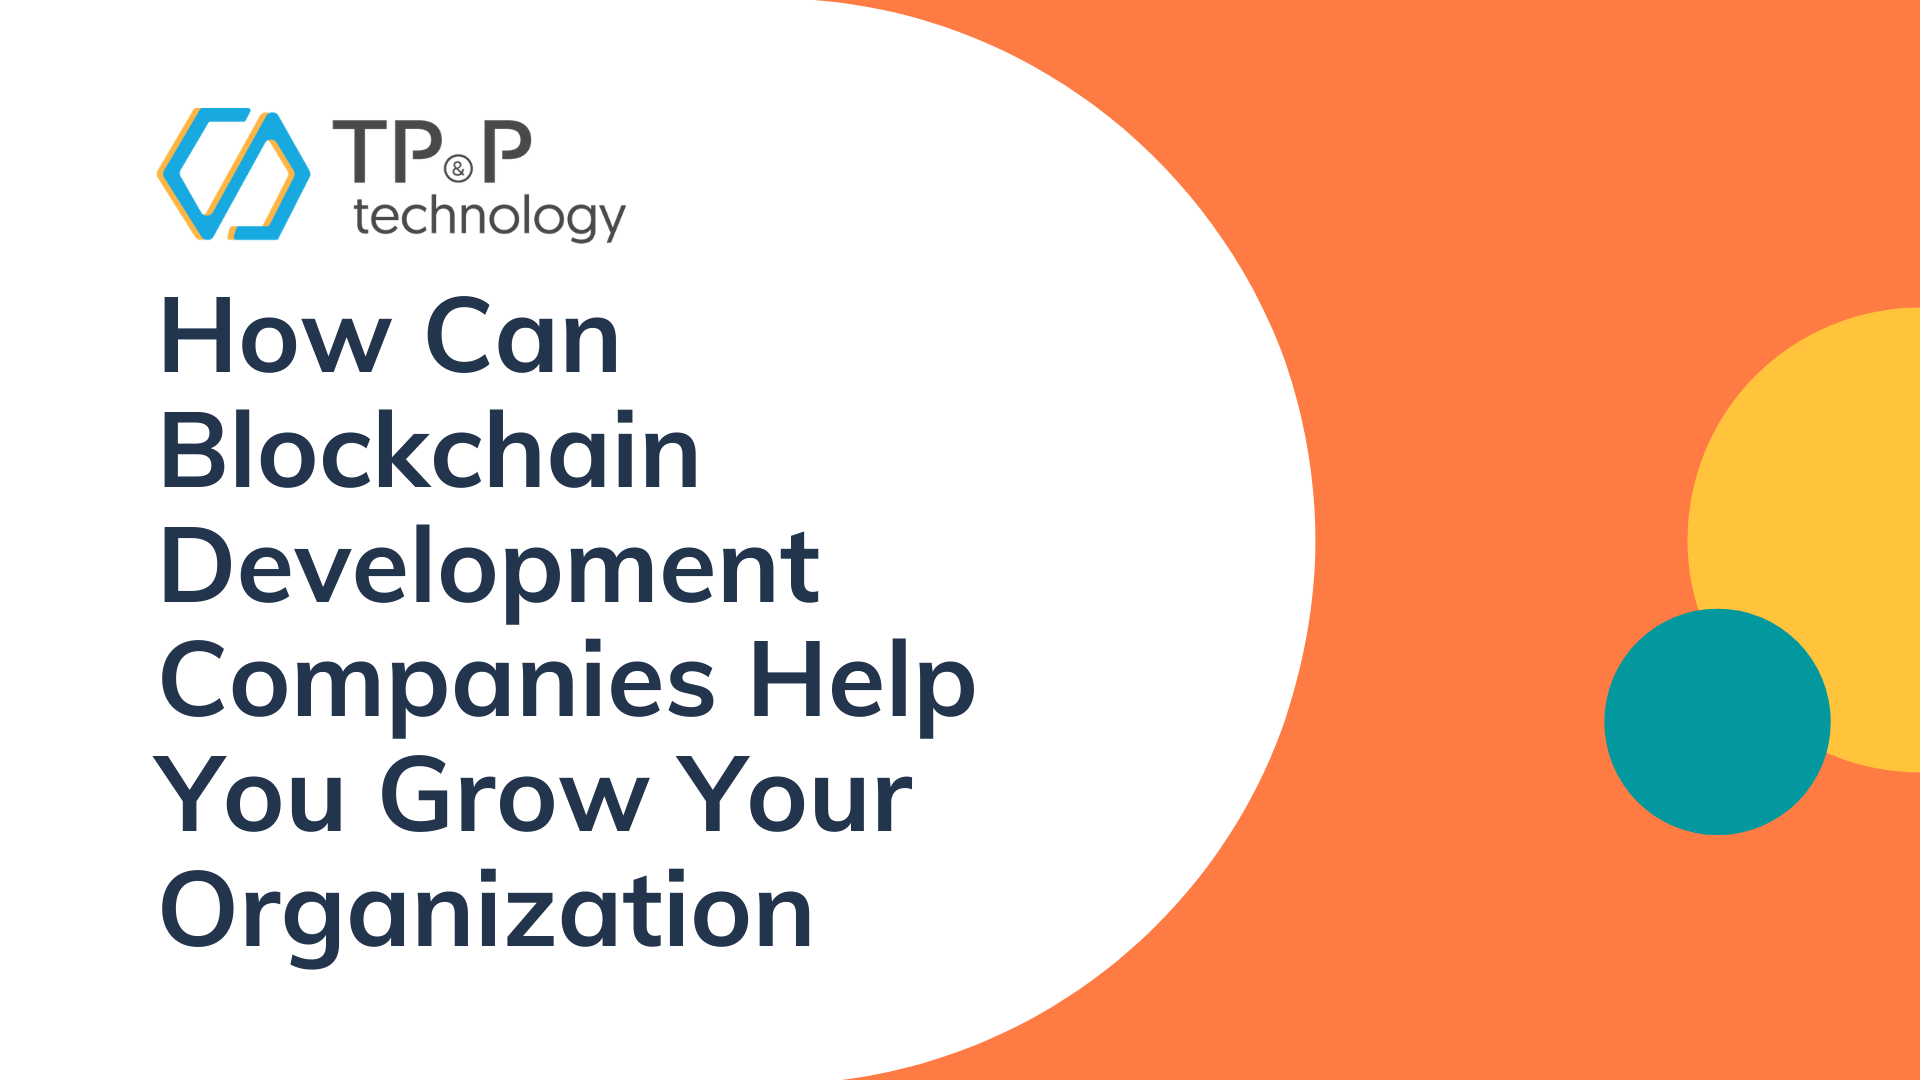 How Can Blockchain Development Companies Help You Grow Your Organization